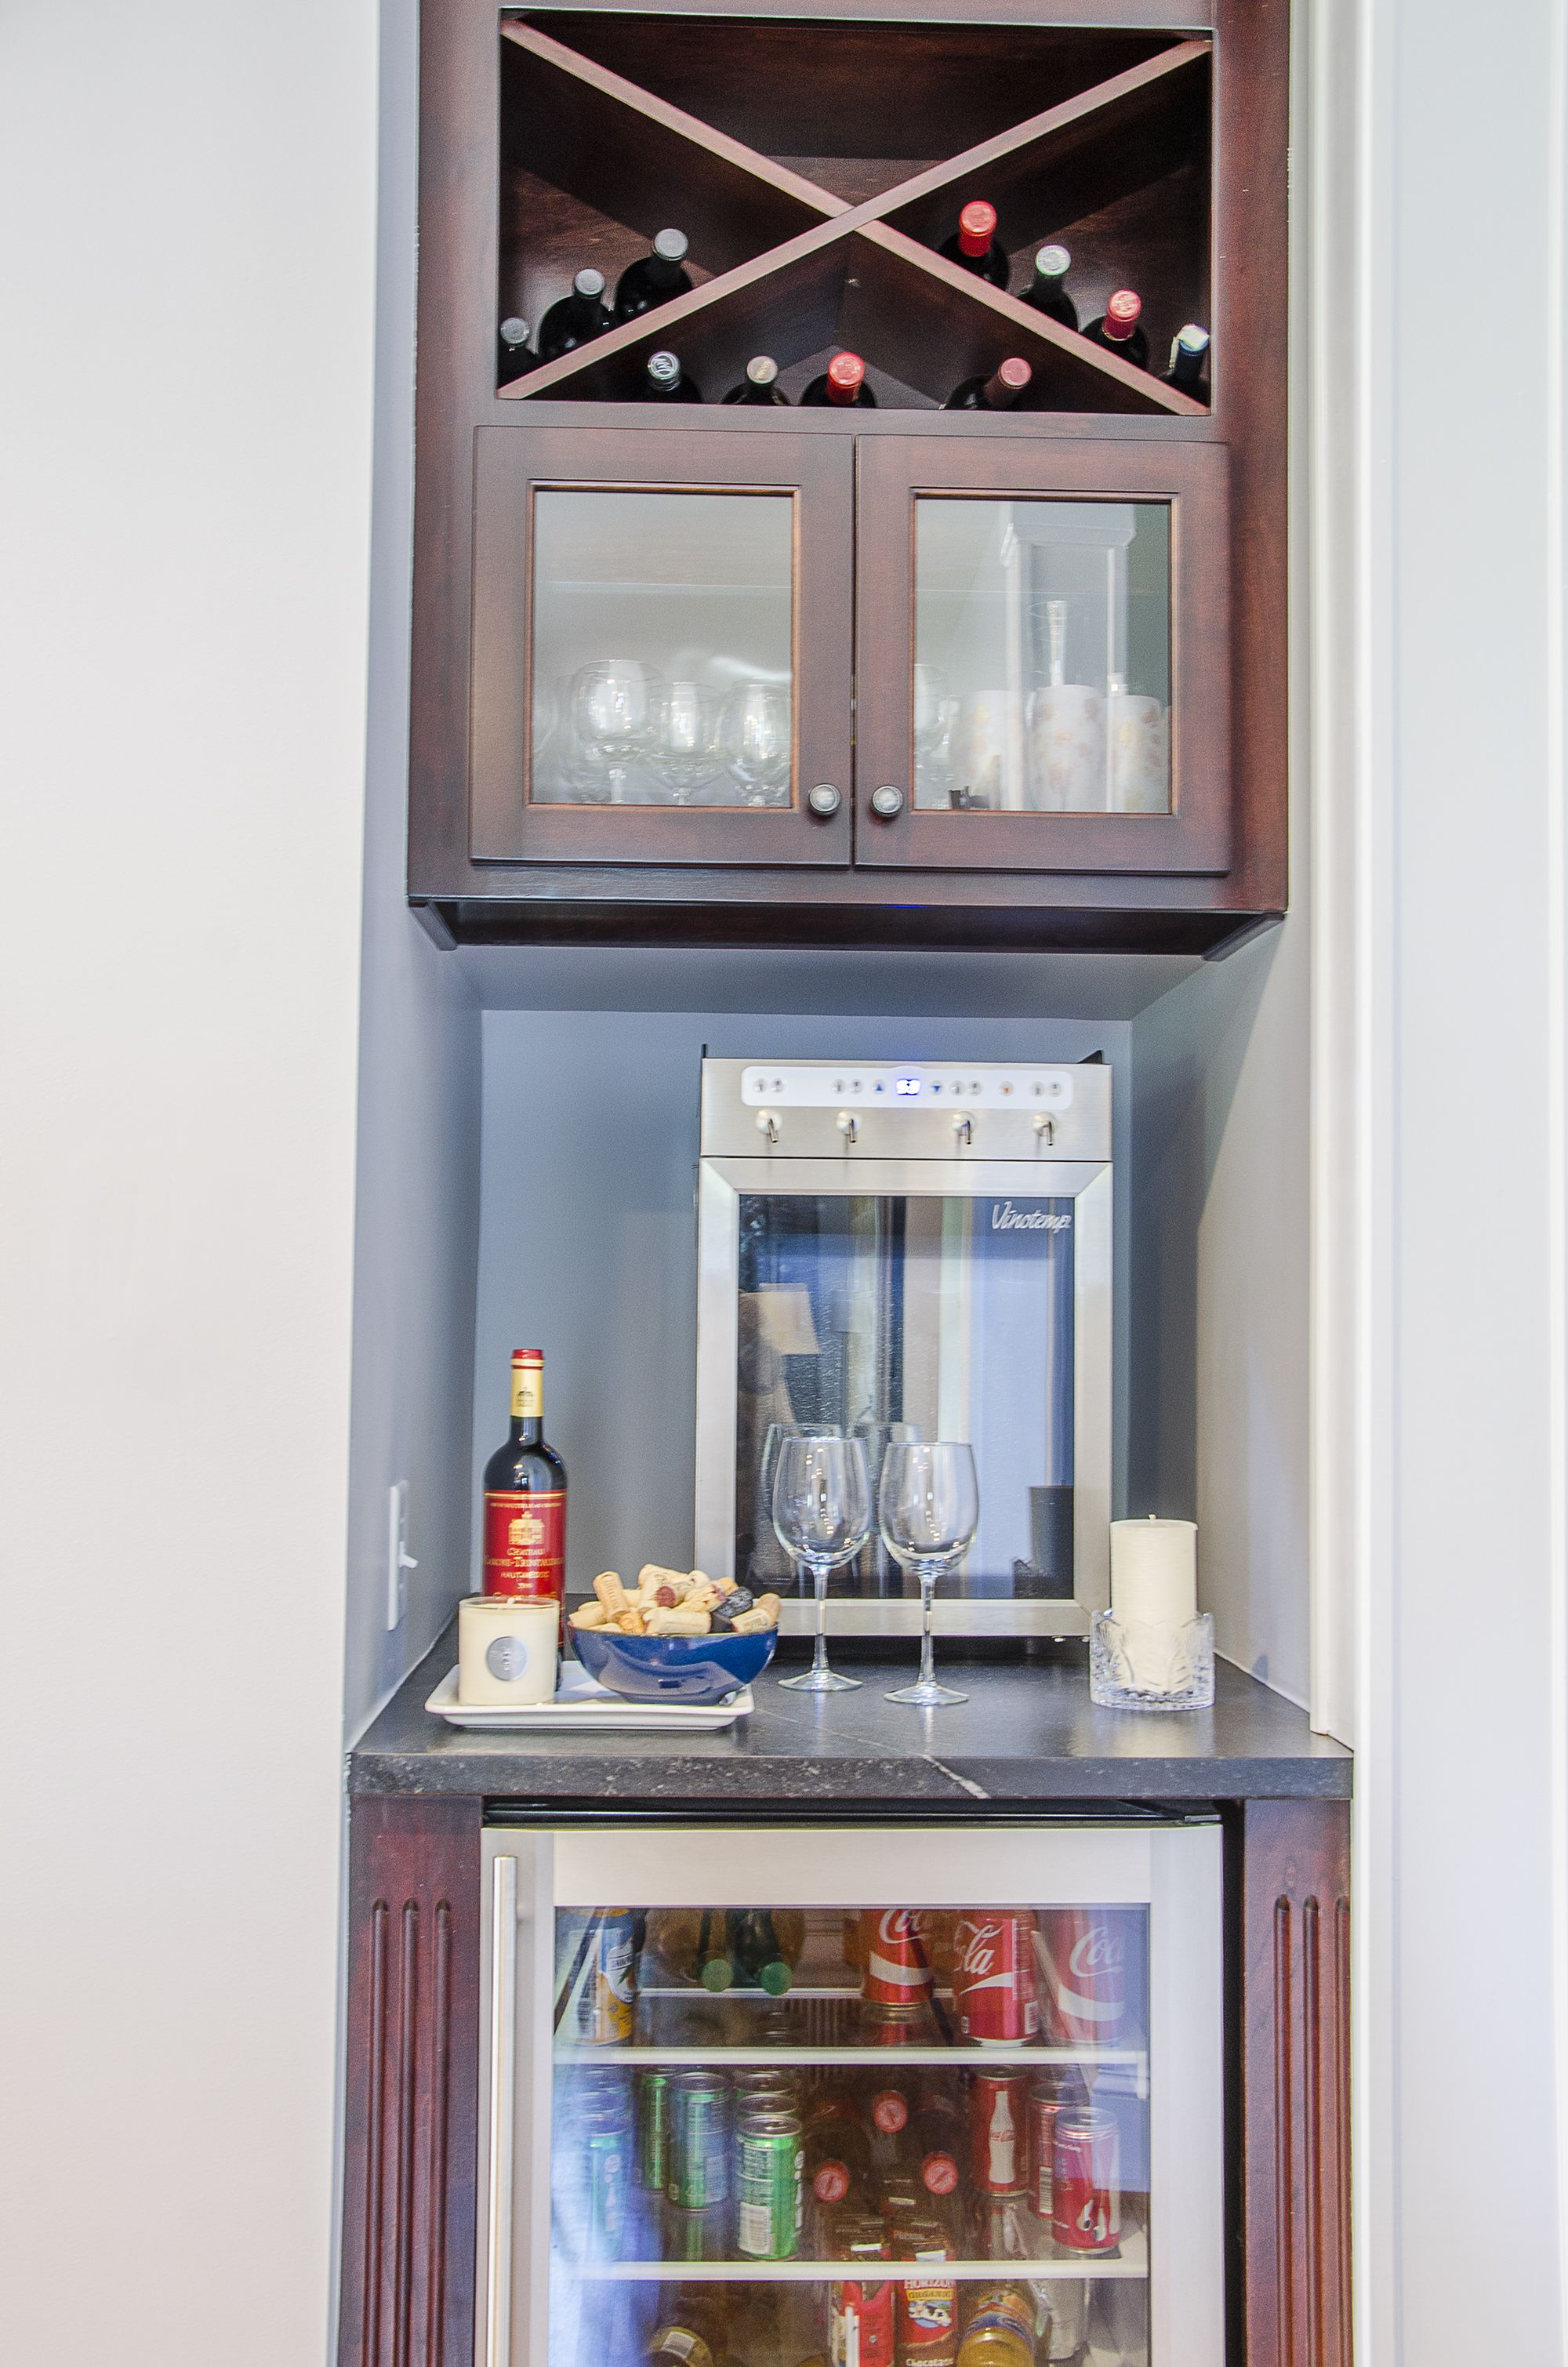 Custom Built Wine Bar In Place Of A Small Closet This Kitchen Remodel Comes With Mini Fridge Dispenser And Shelving For